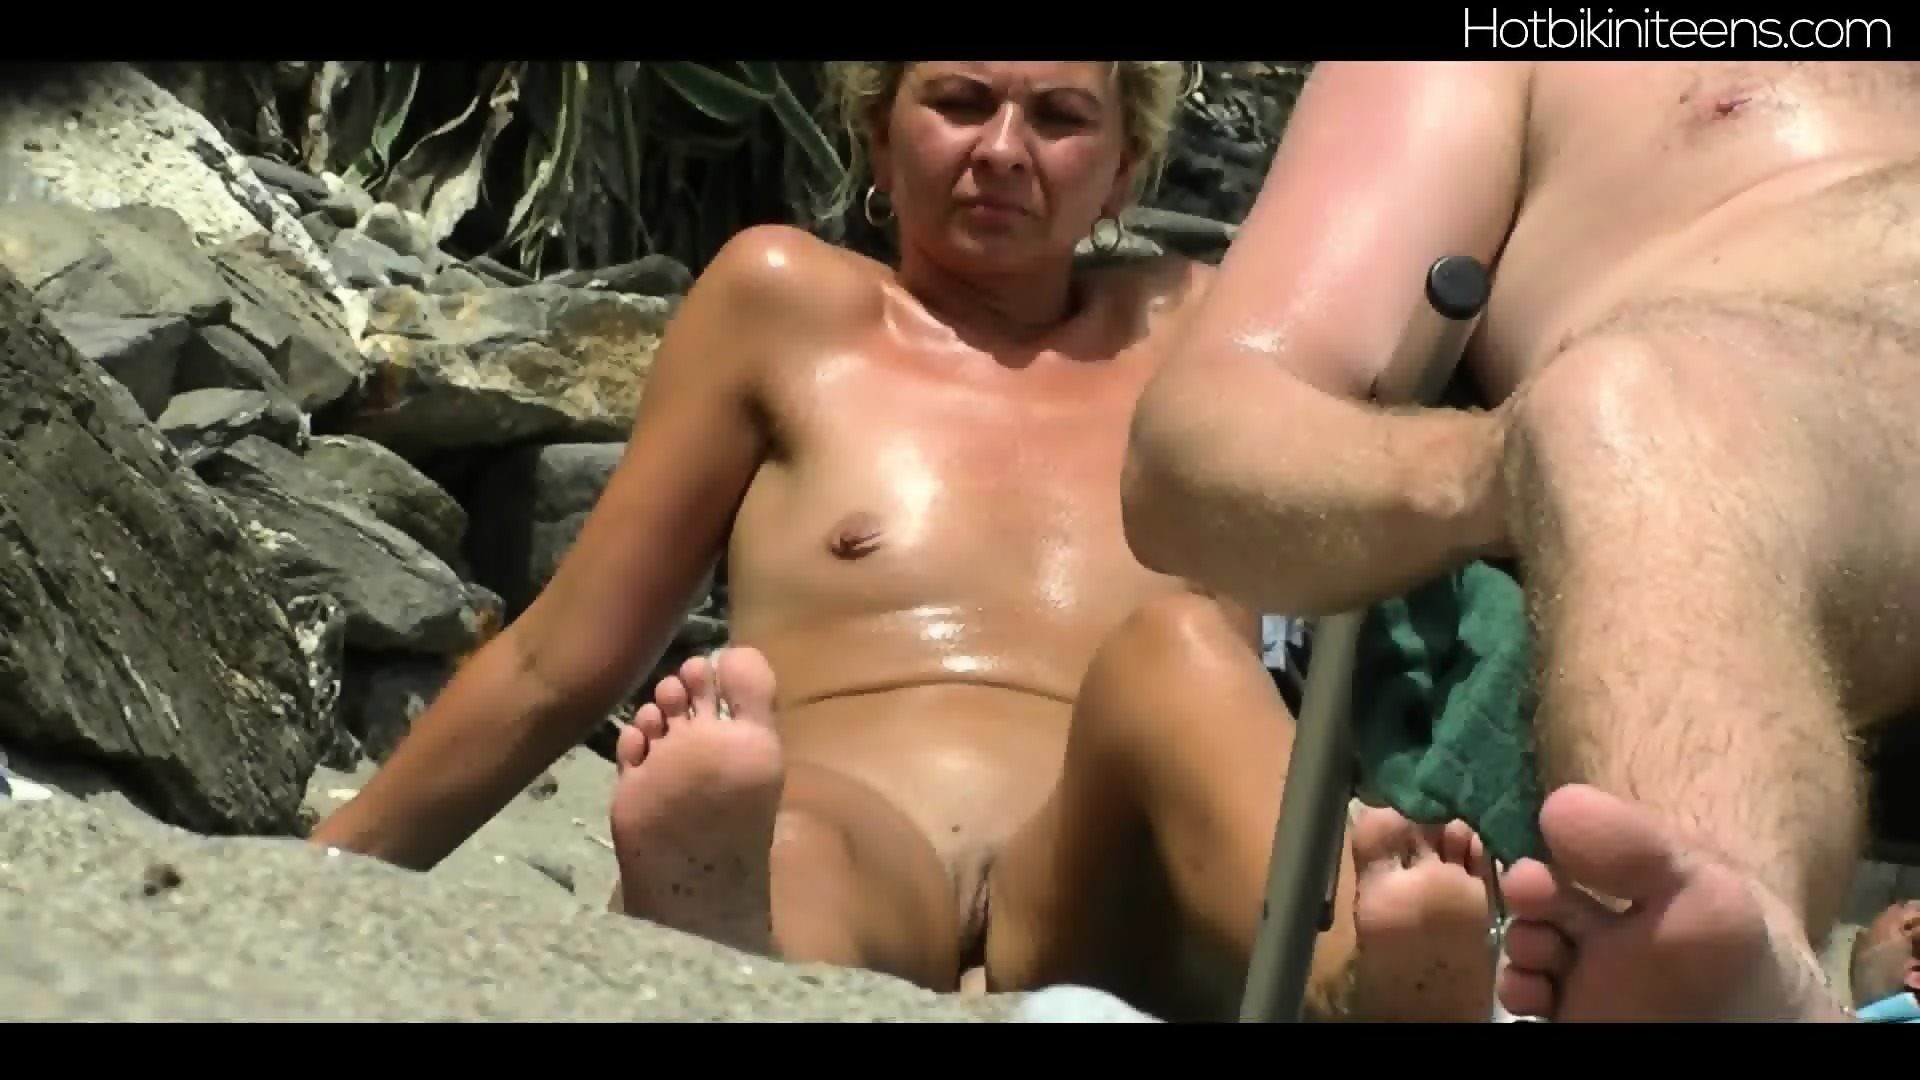 Beach Videos - Large Porn Tube Free Beach porn